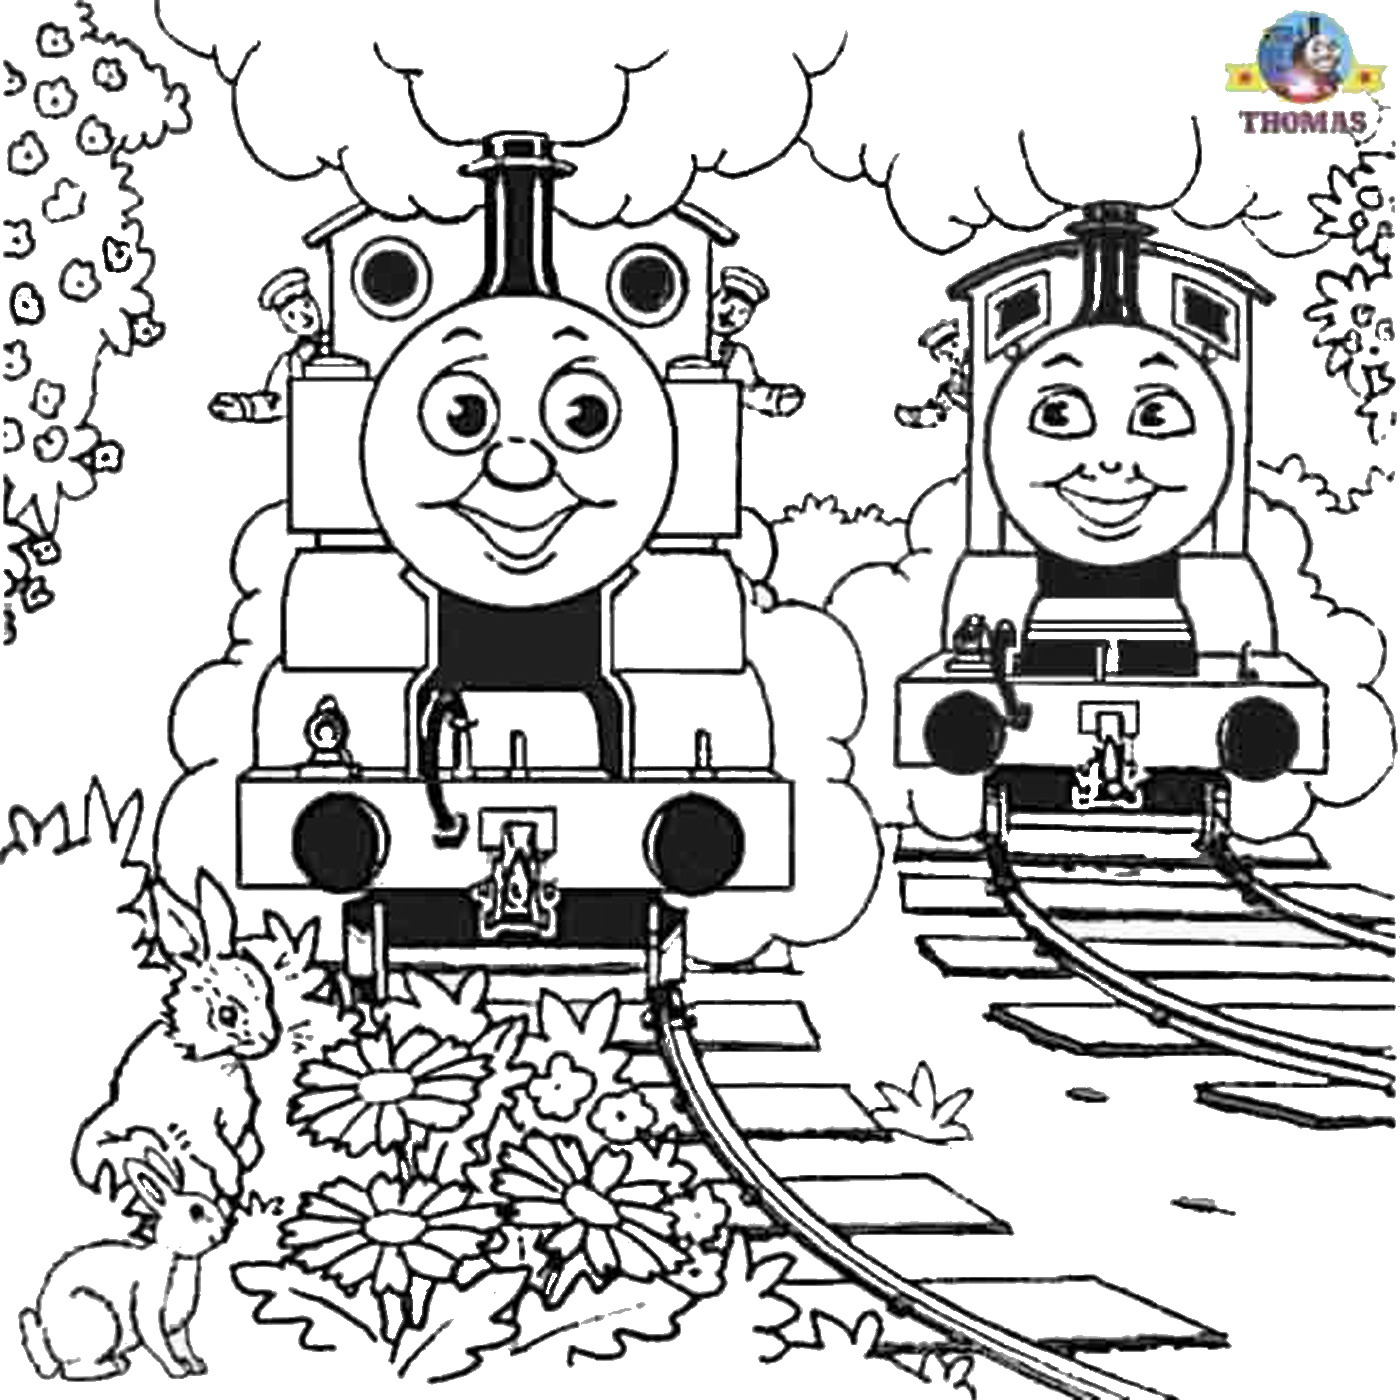 Thomas The Tank Engine Drawing At Getdrawings